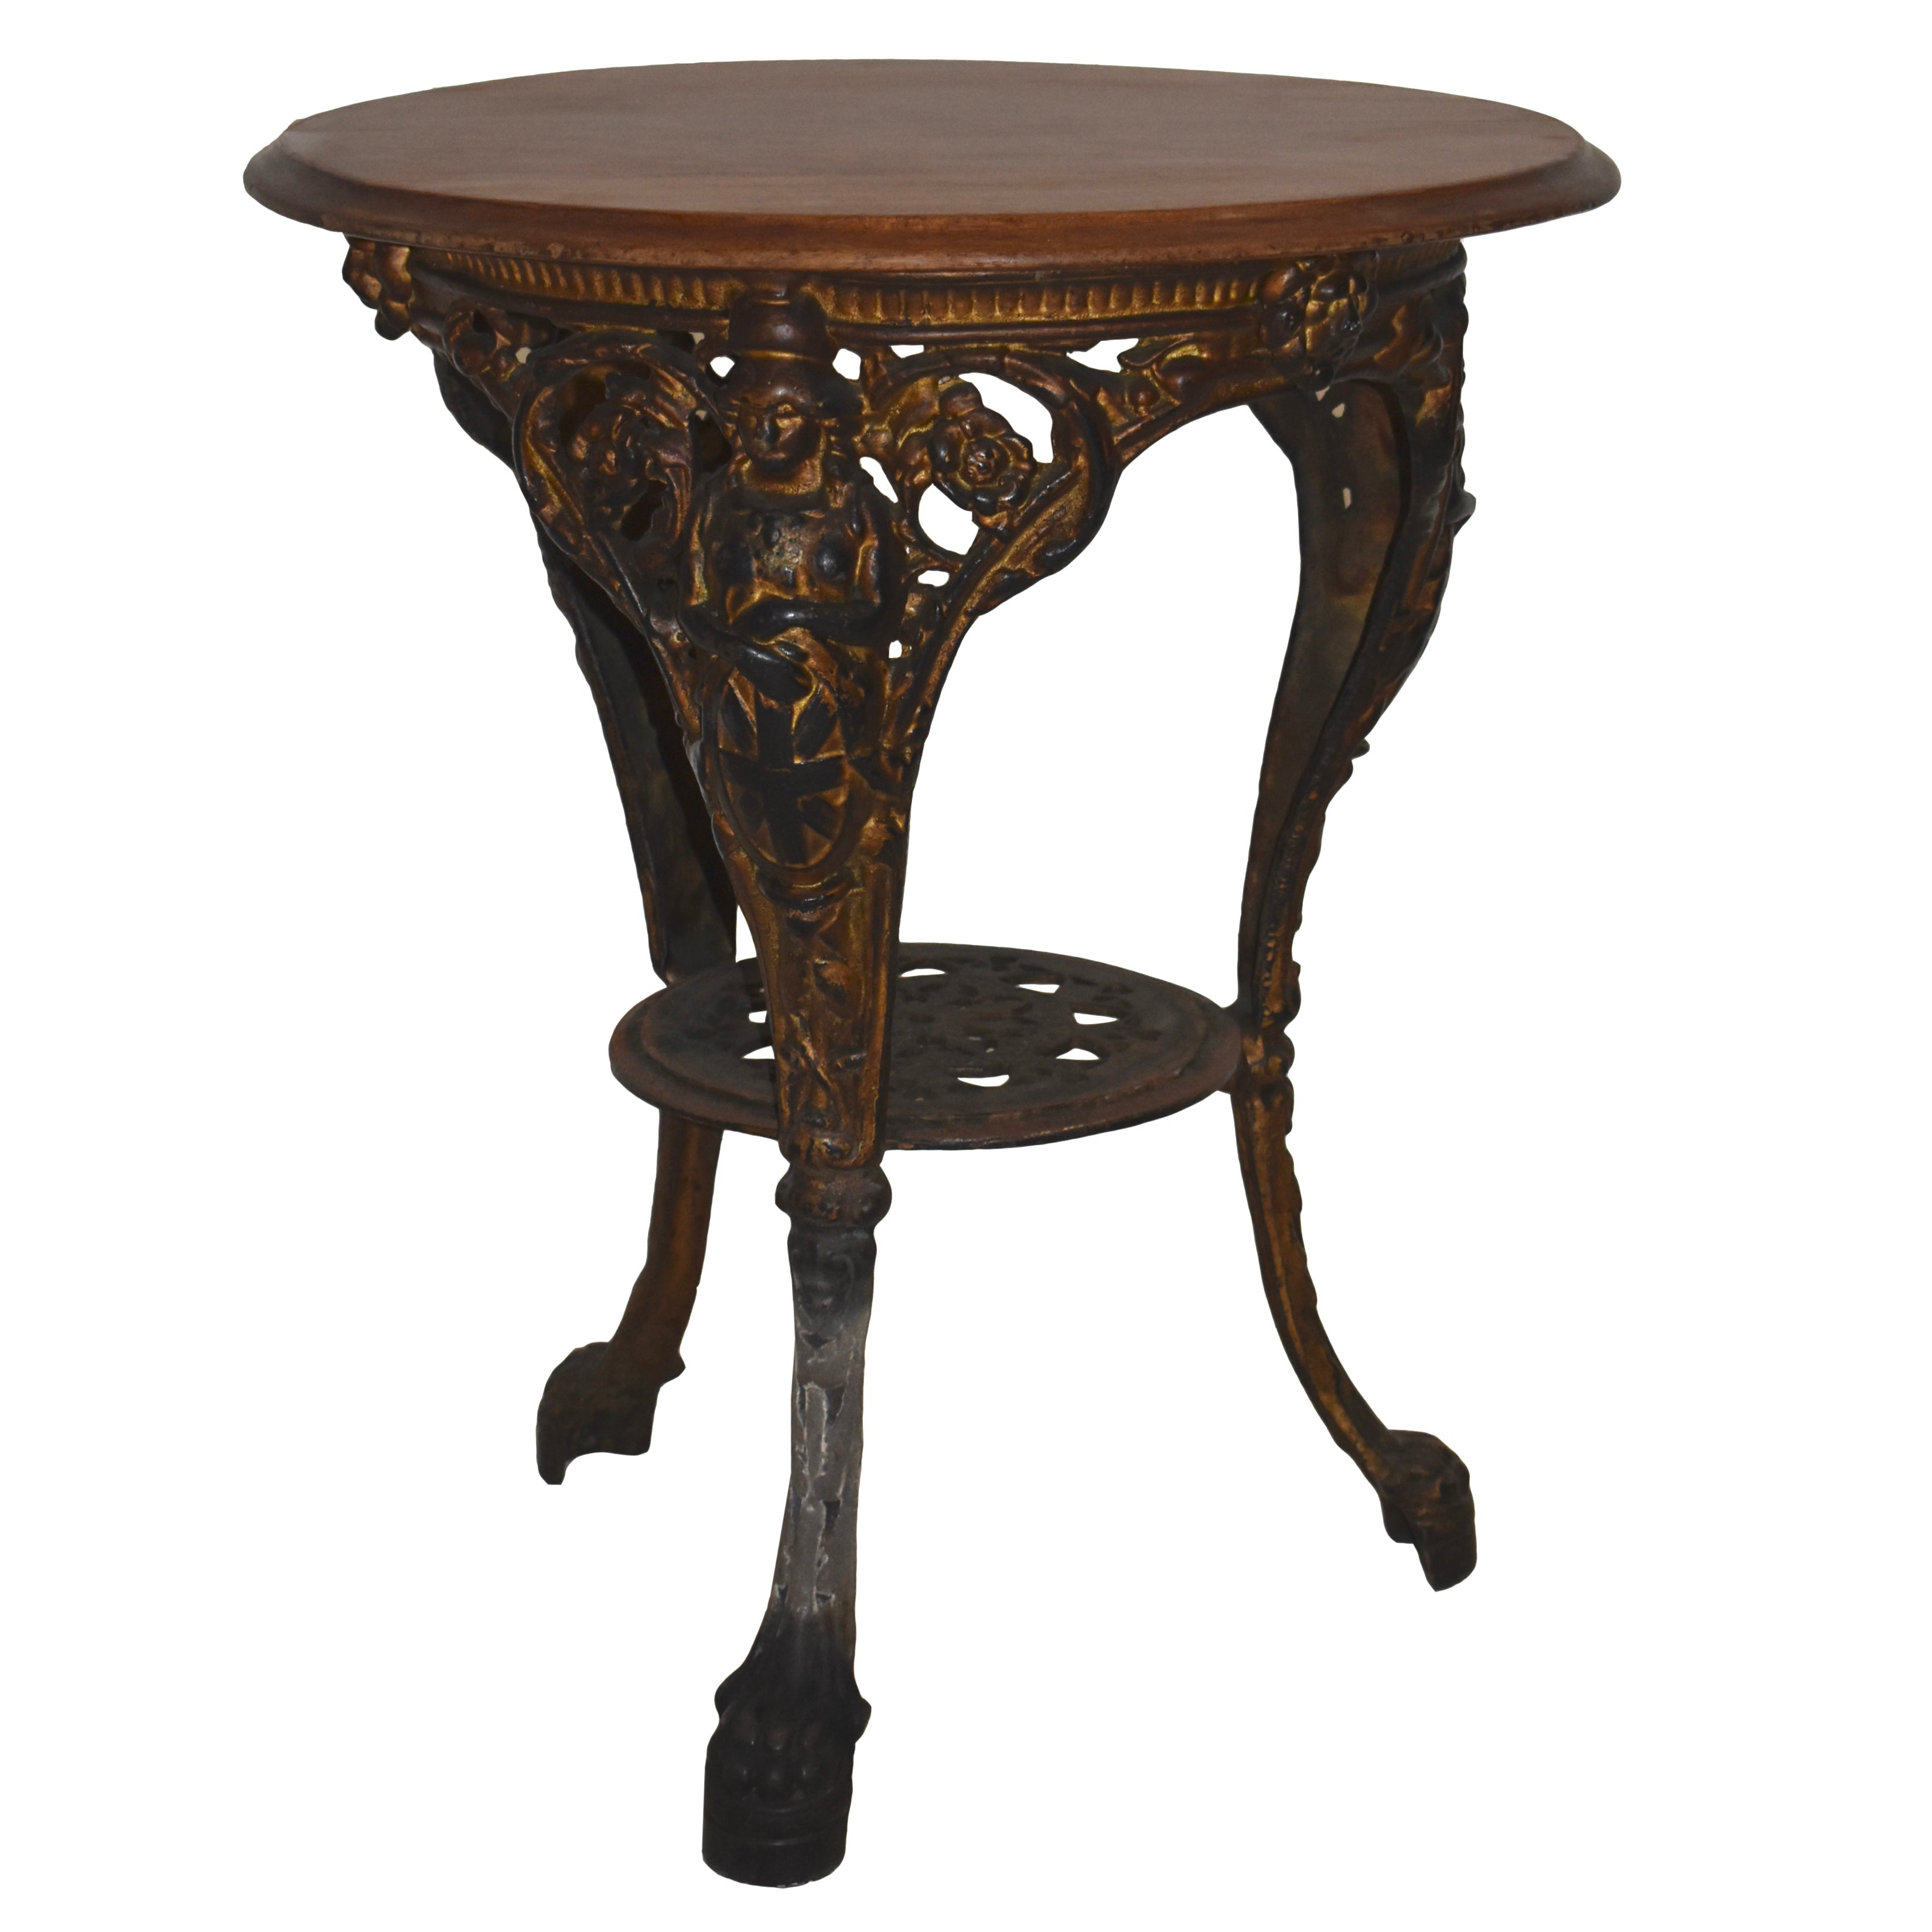 English Side Table with Iron Base